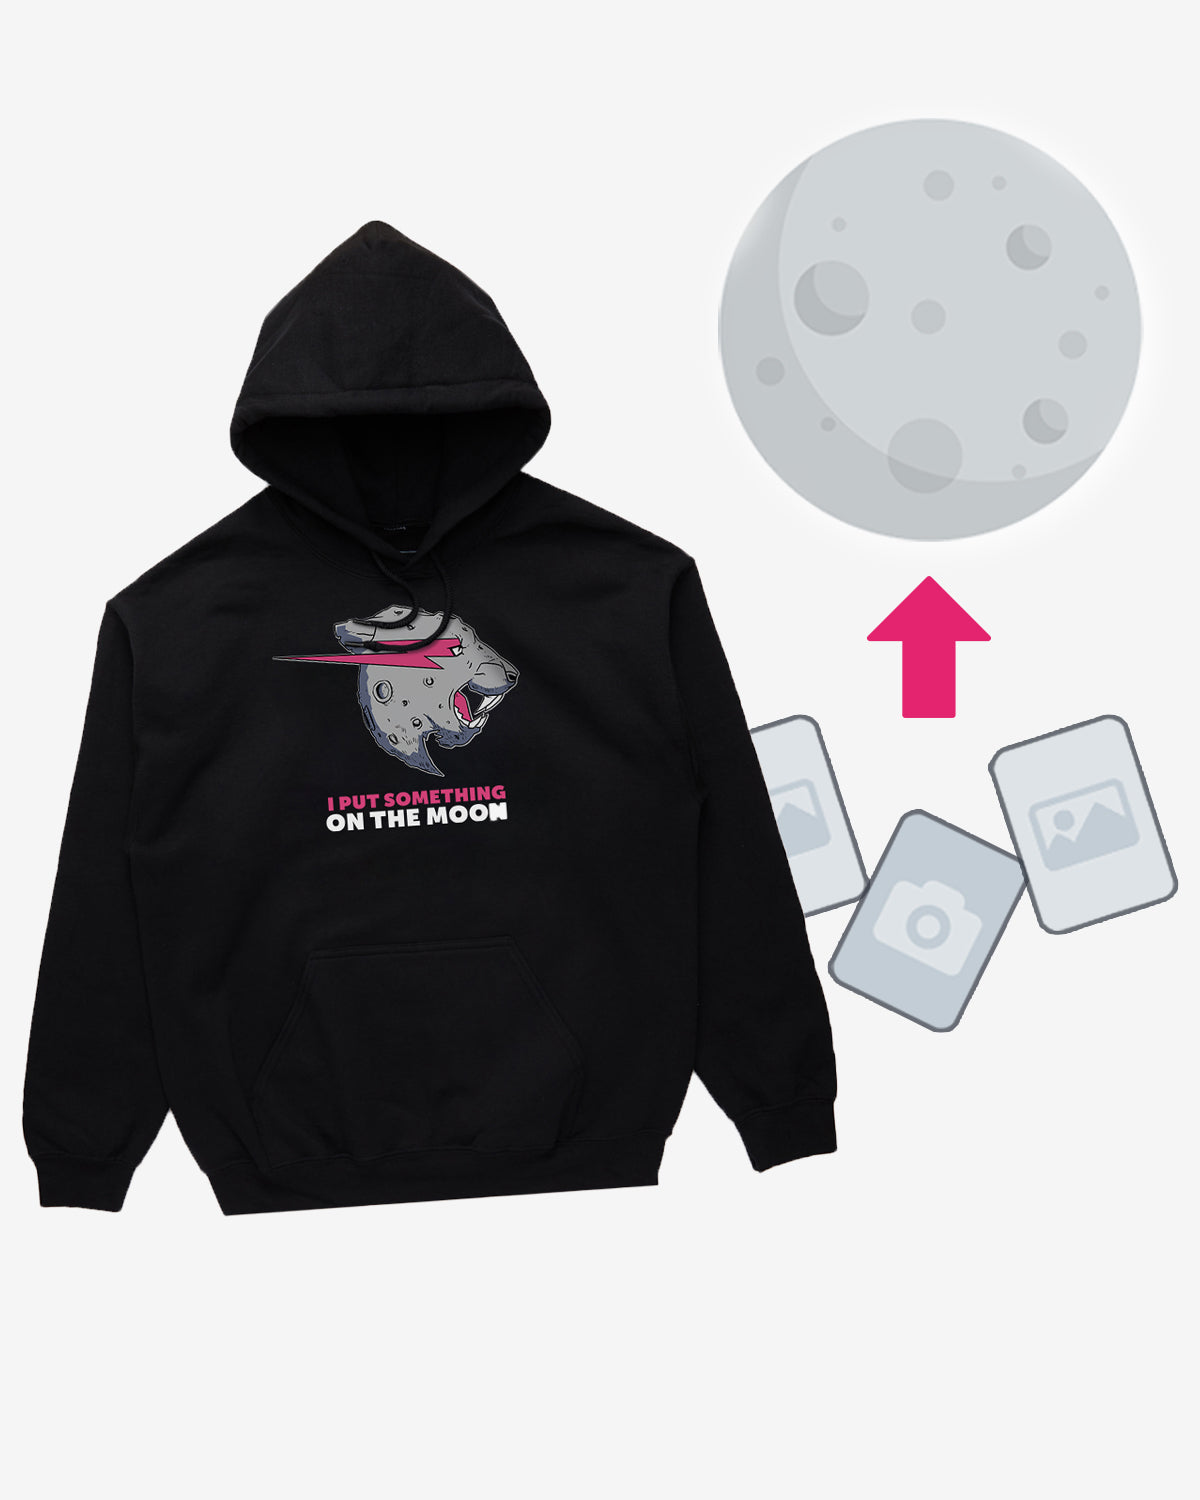 Send Image/Video to the Moon + Exclusive Hoodie